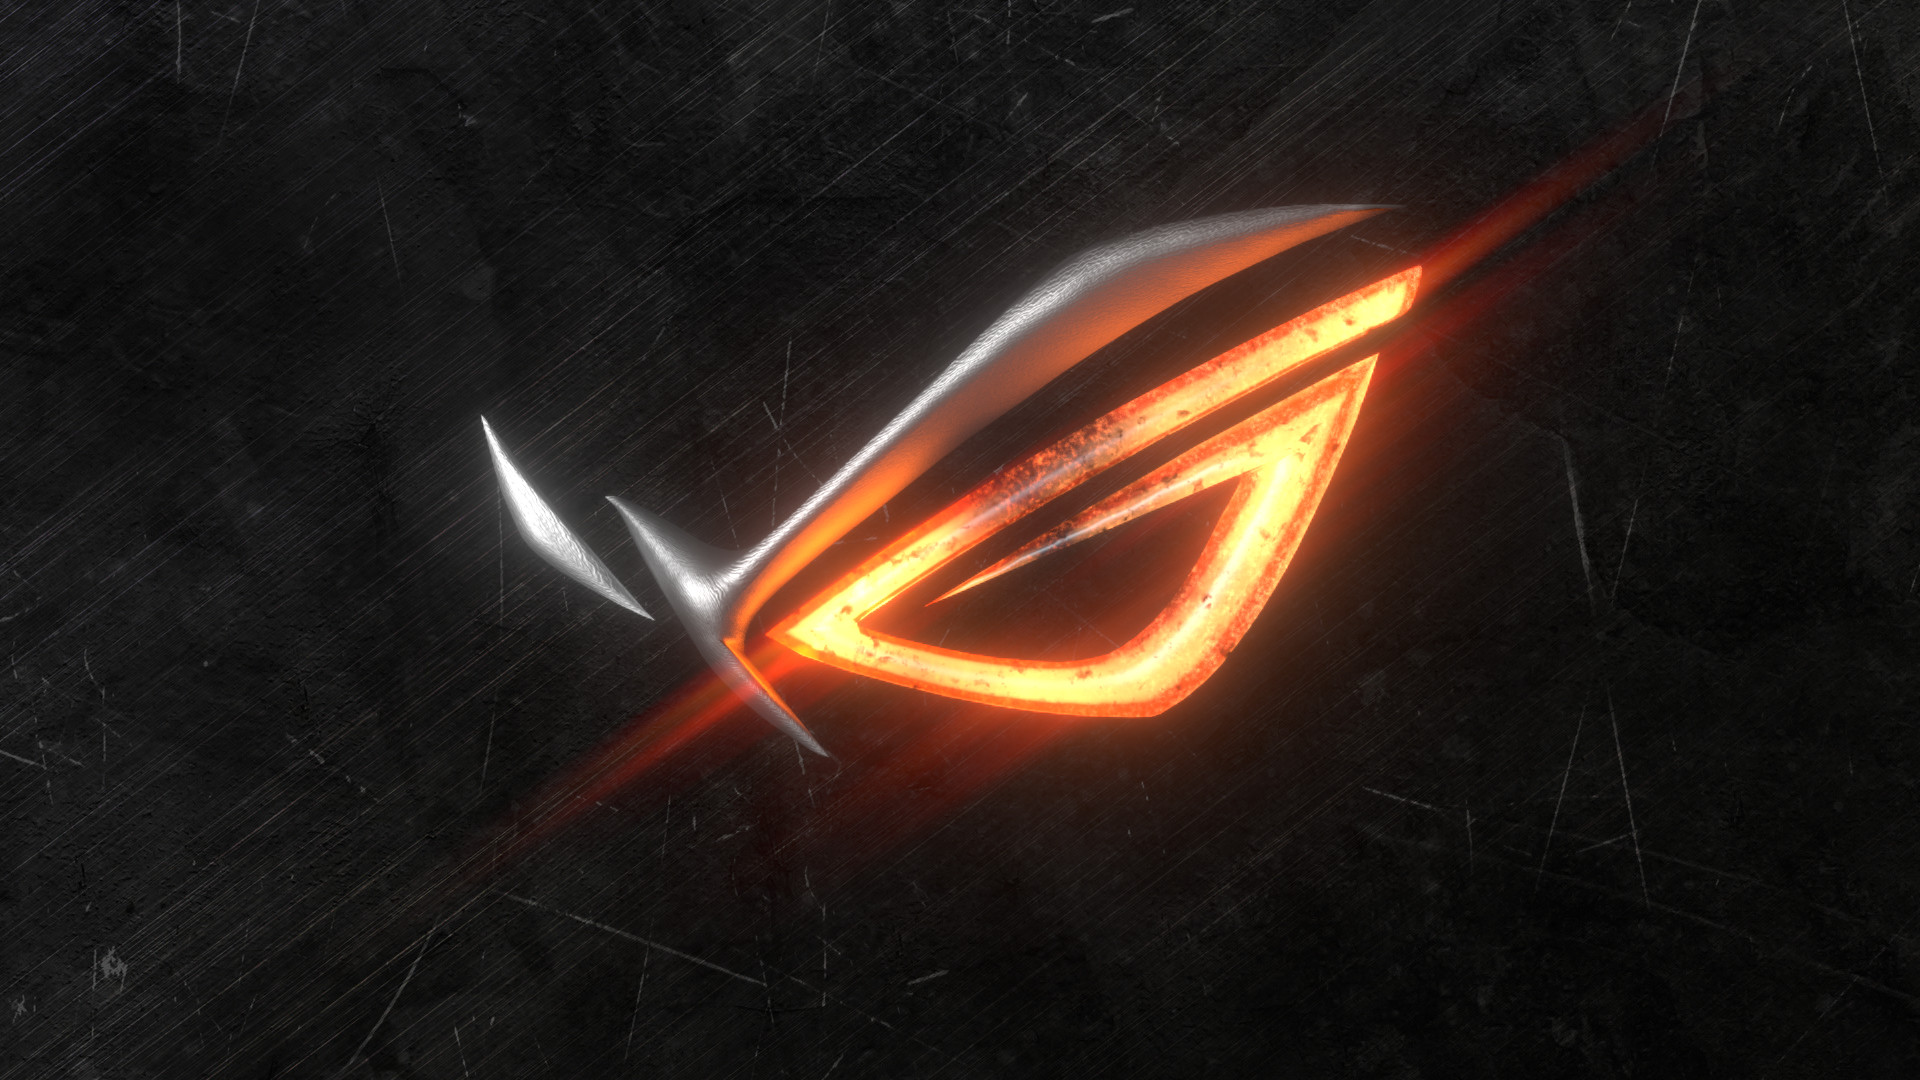 Res: 1920x1080, Asus Rog Wallpapers 1080p For Free Wallpaper